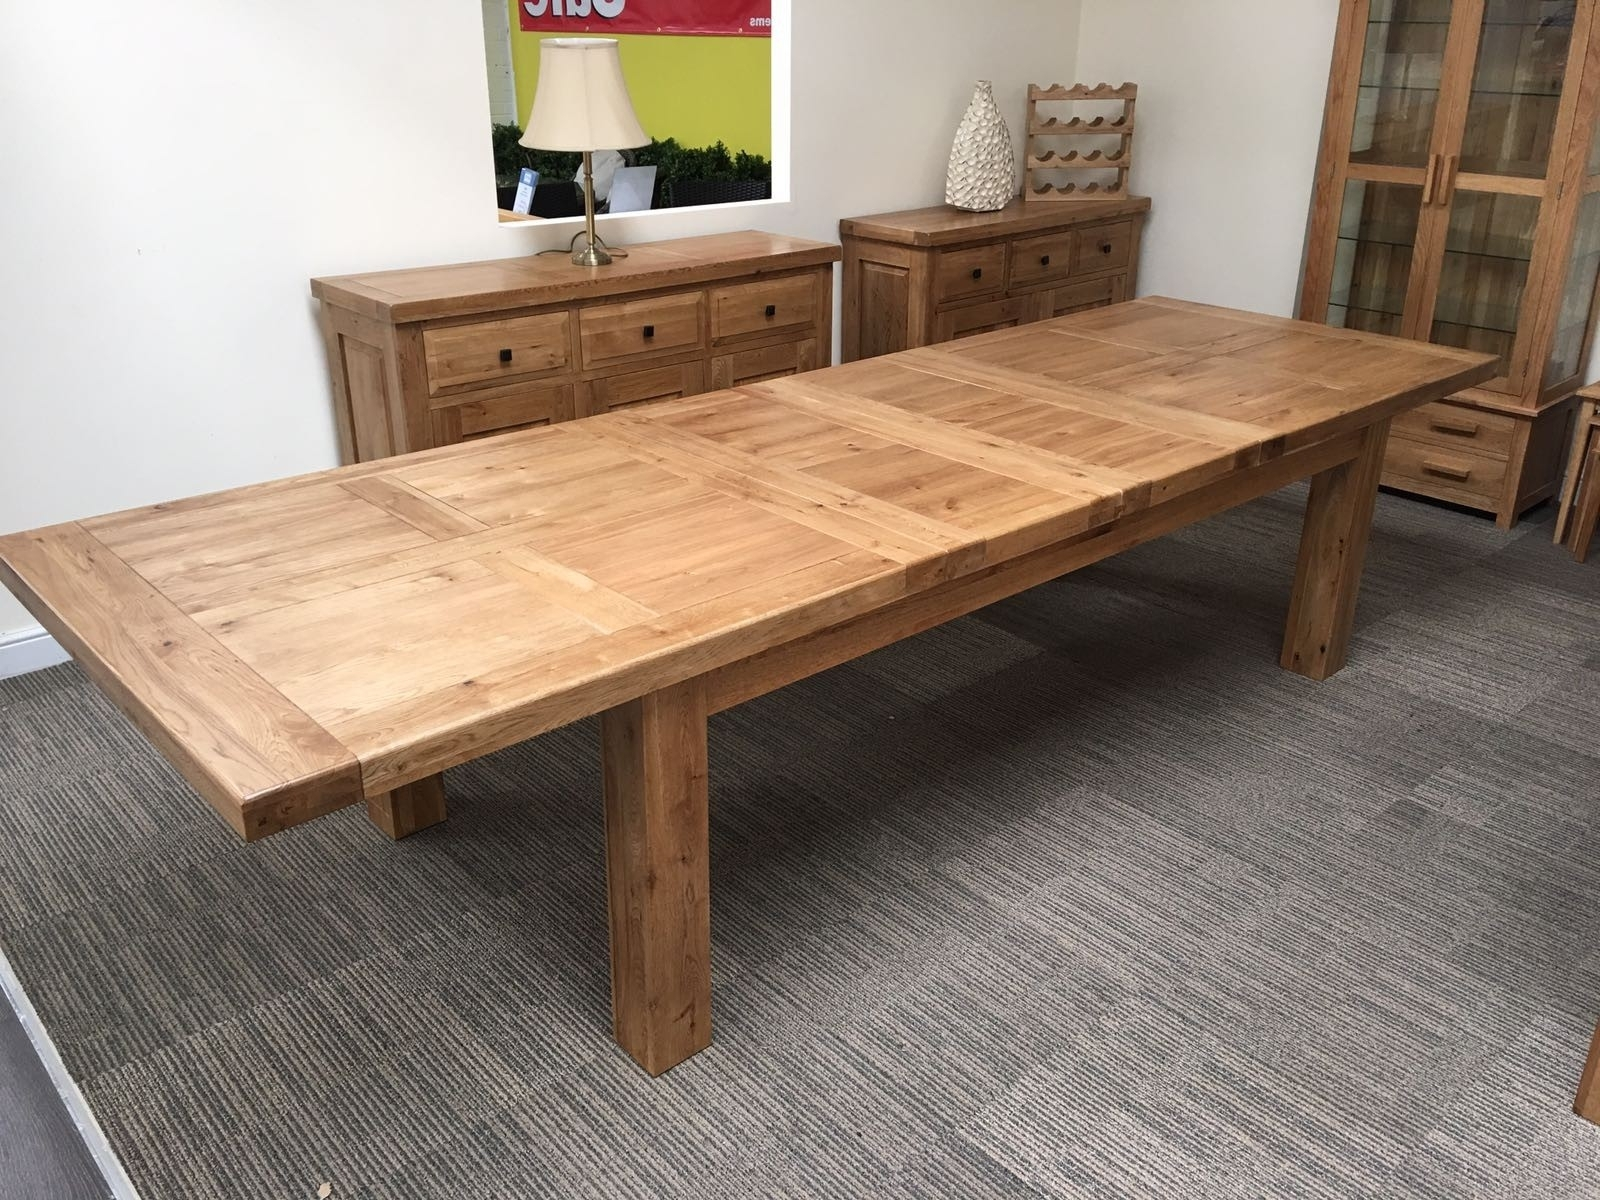 2018 The Making Of The Solid Wood Dining Table – Home Decor Ideas Throughout Extending Oak Dining Tables (Gallery 2 of 25)